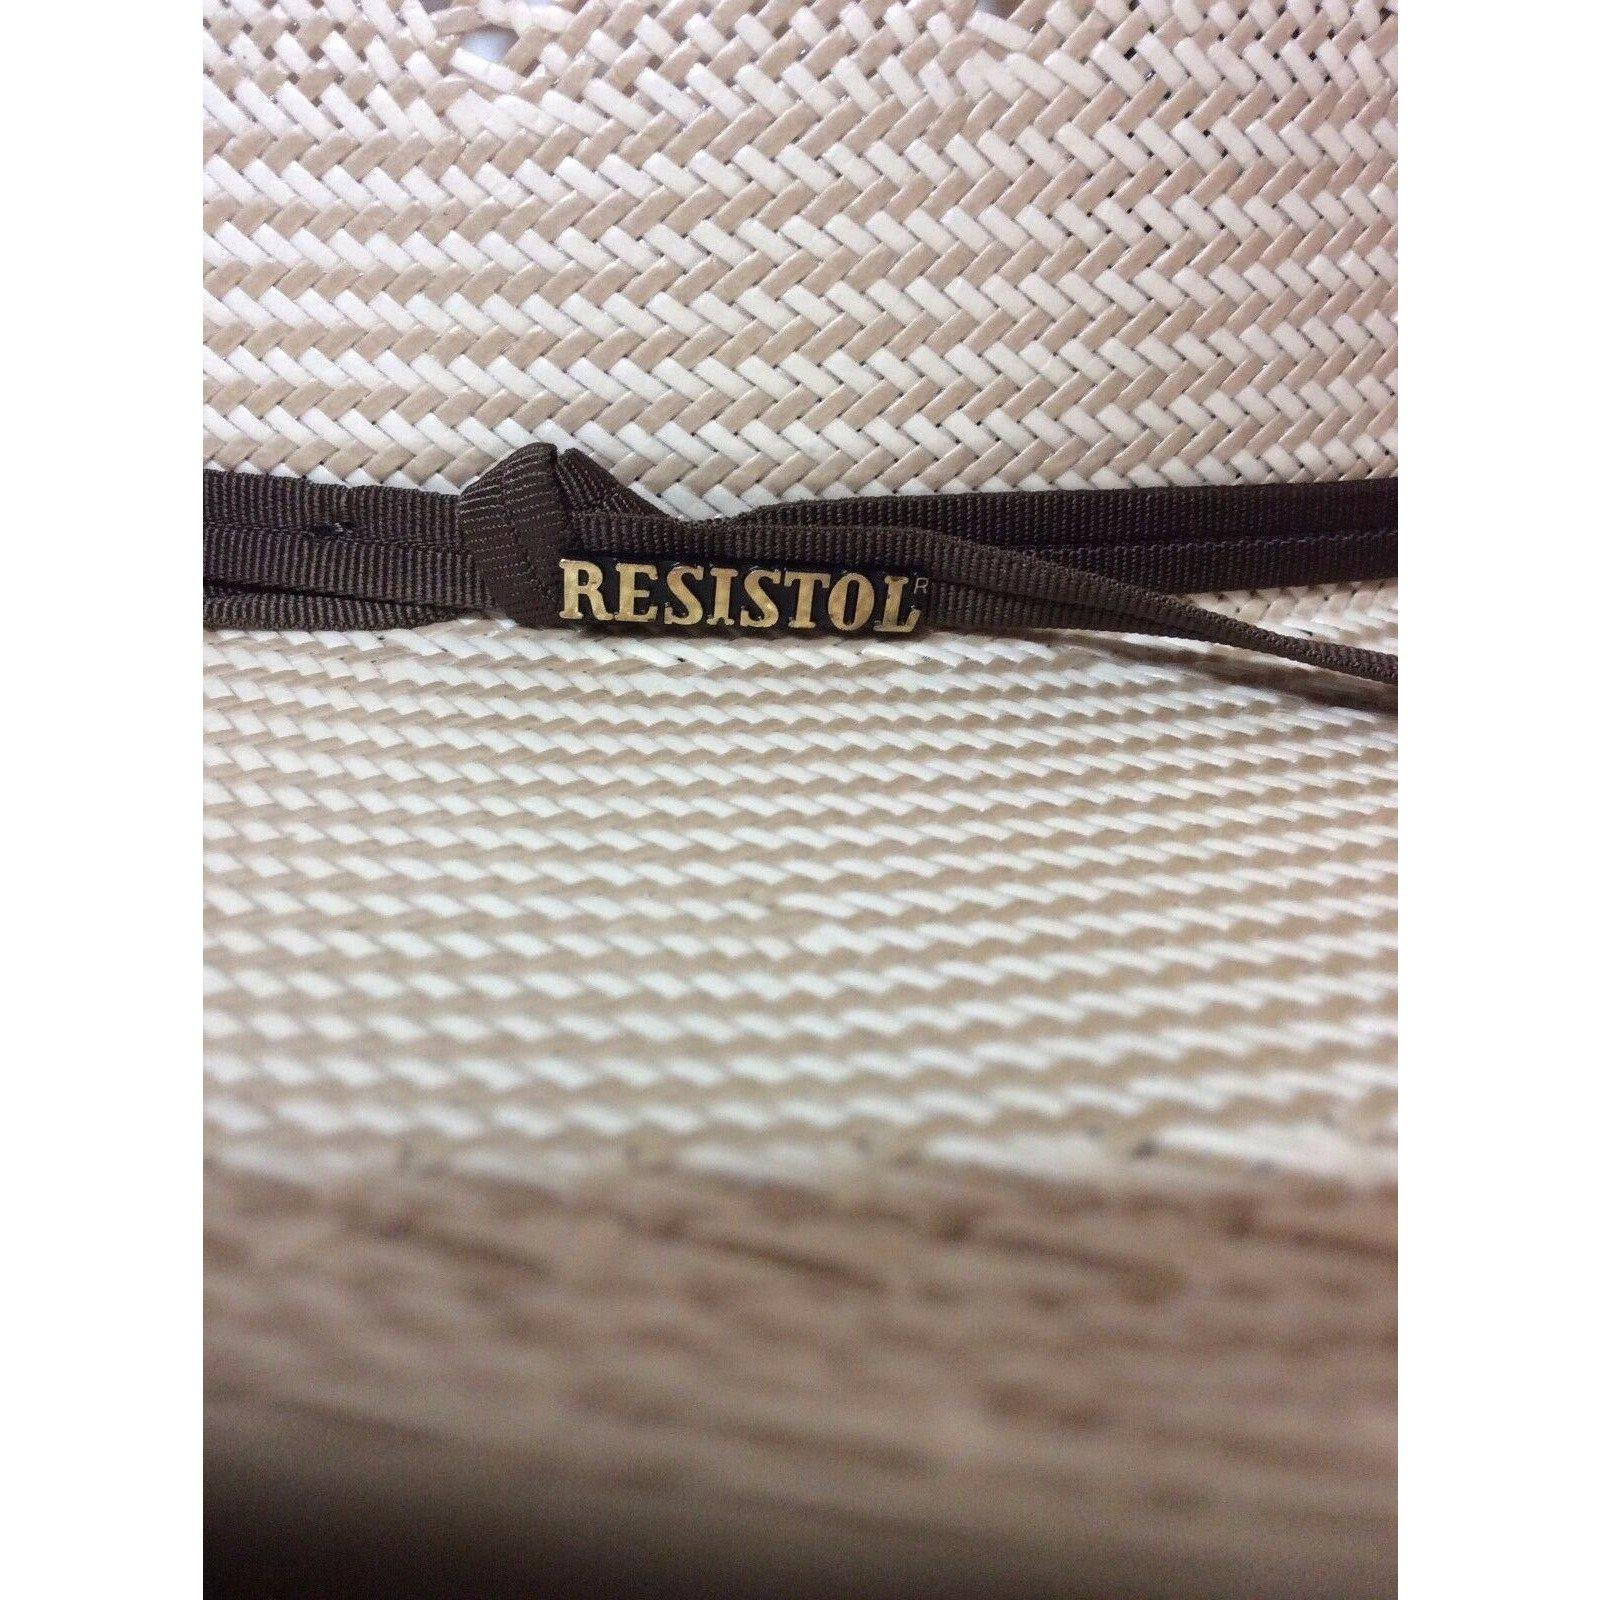 Resistol 20x Conley Rodeo Western Cowboy Stetson Tan Ivory Natural Straw Hat - CWesternwear